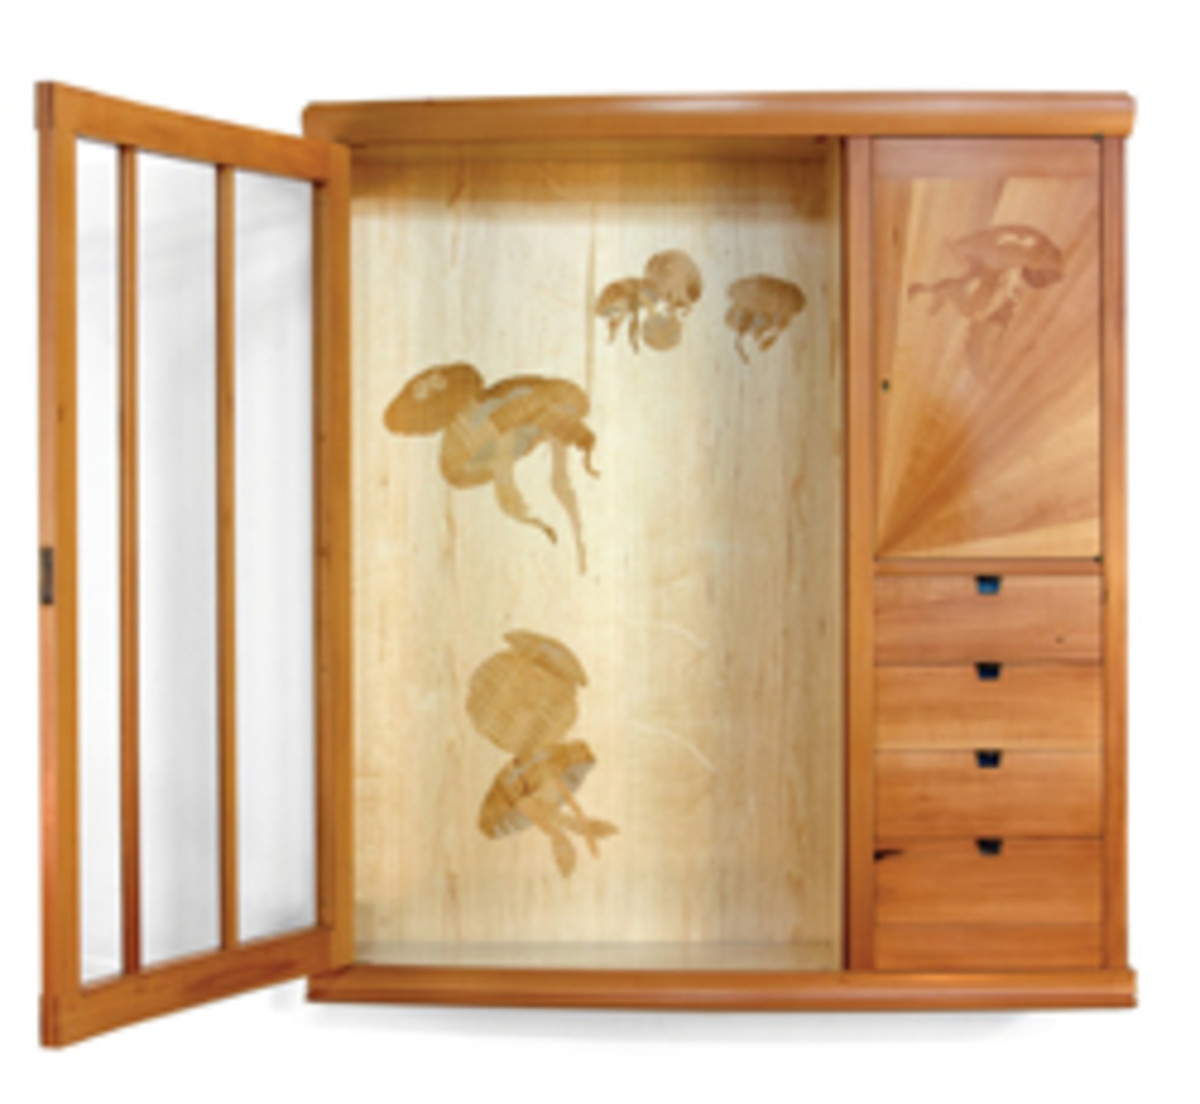 Jellyfish Wall Cabinet, by Jay T. Scott, was Best of Show in 2014.